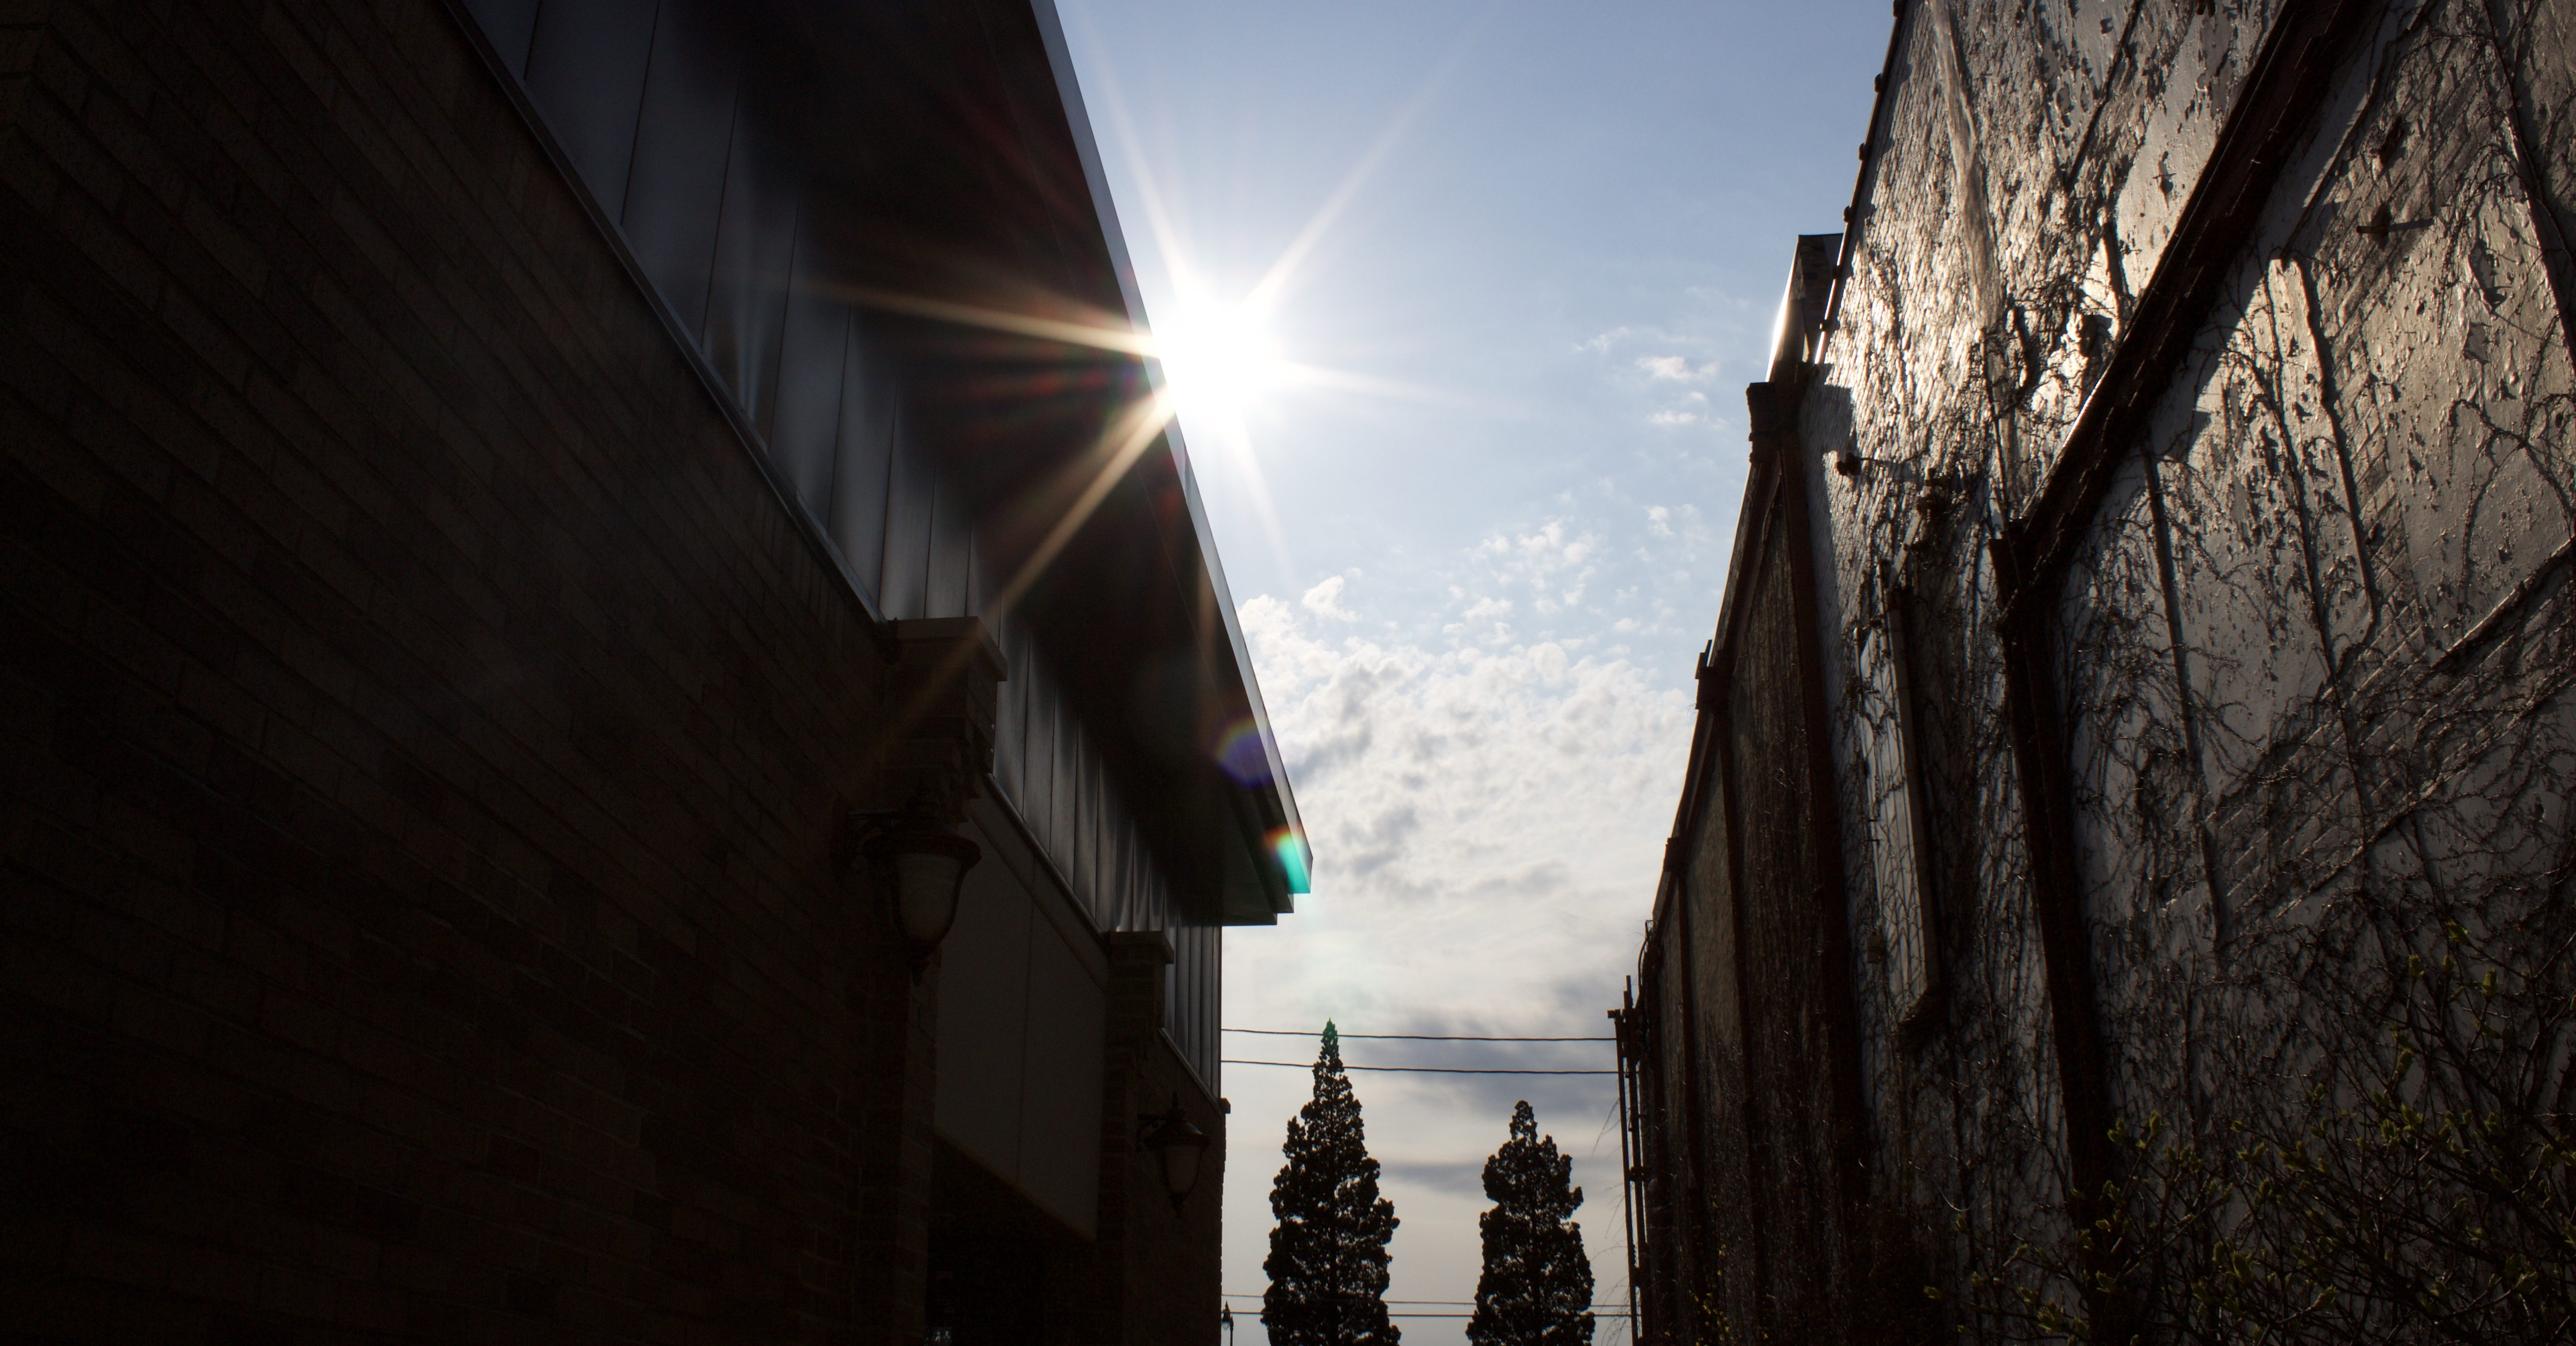 City of Racine business incentives and historic tax credits